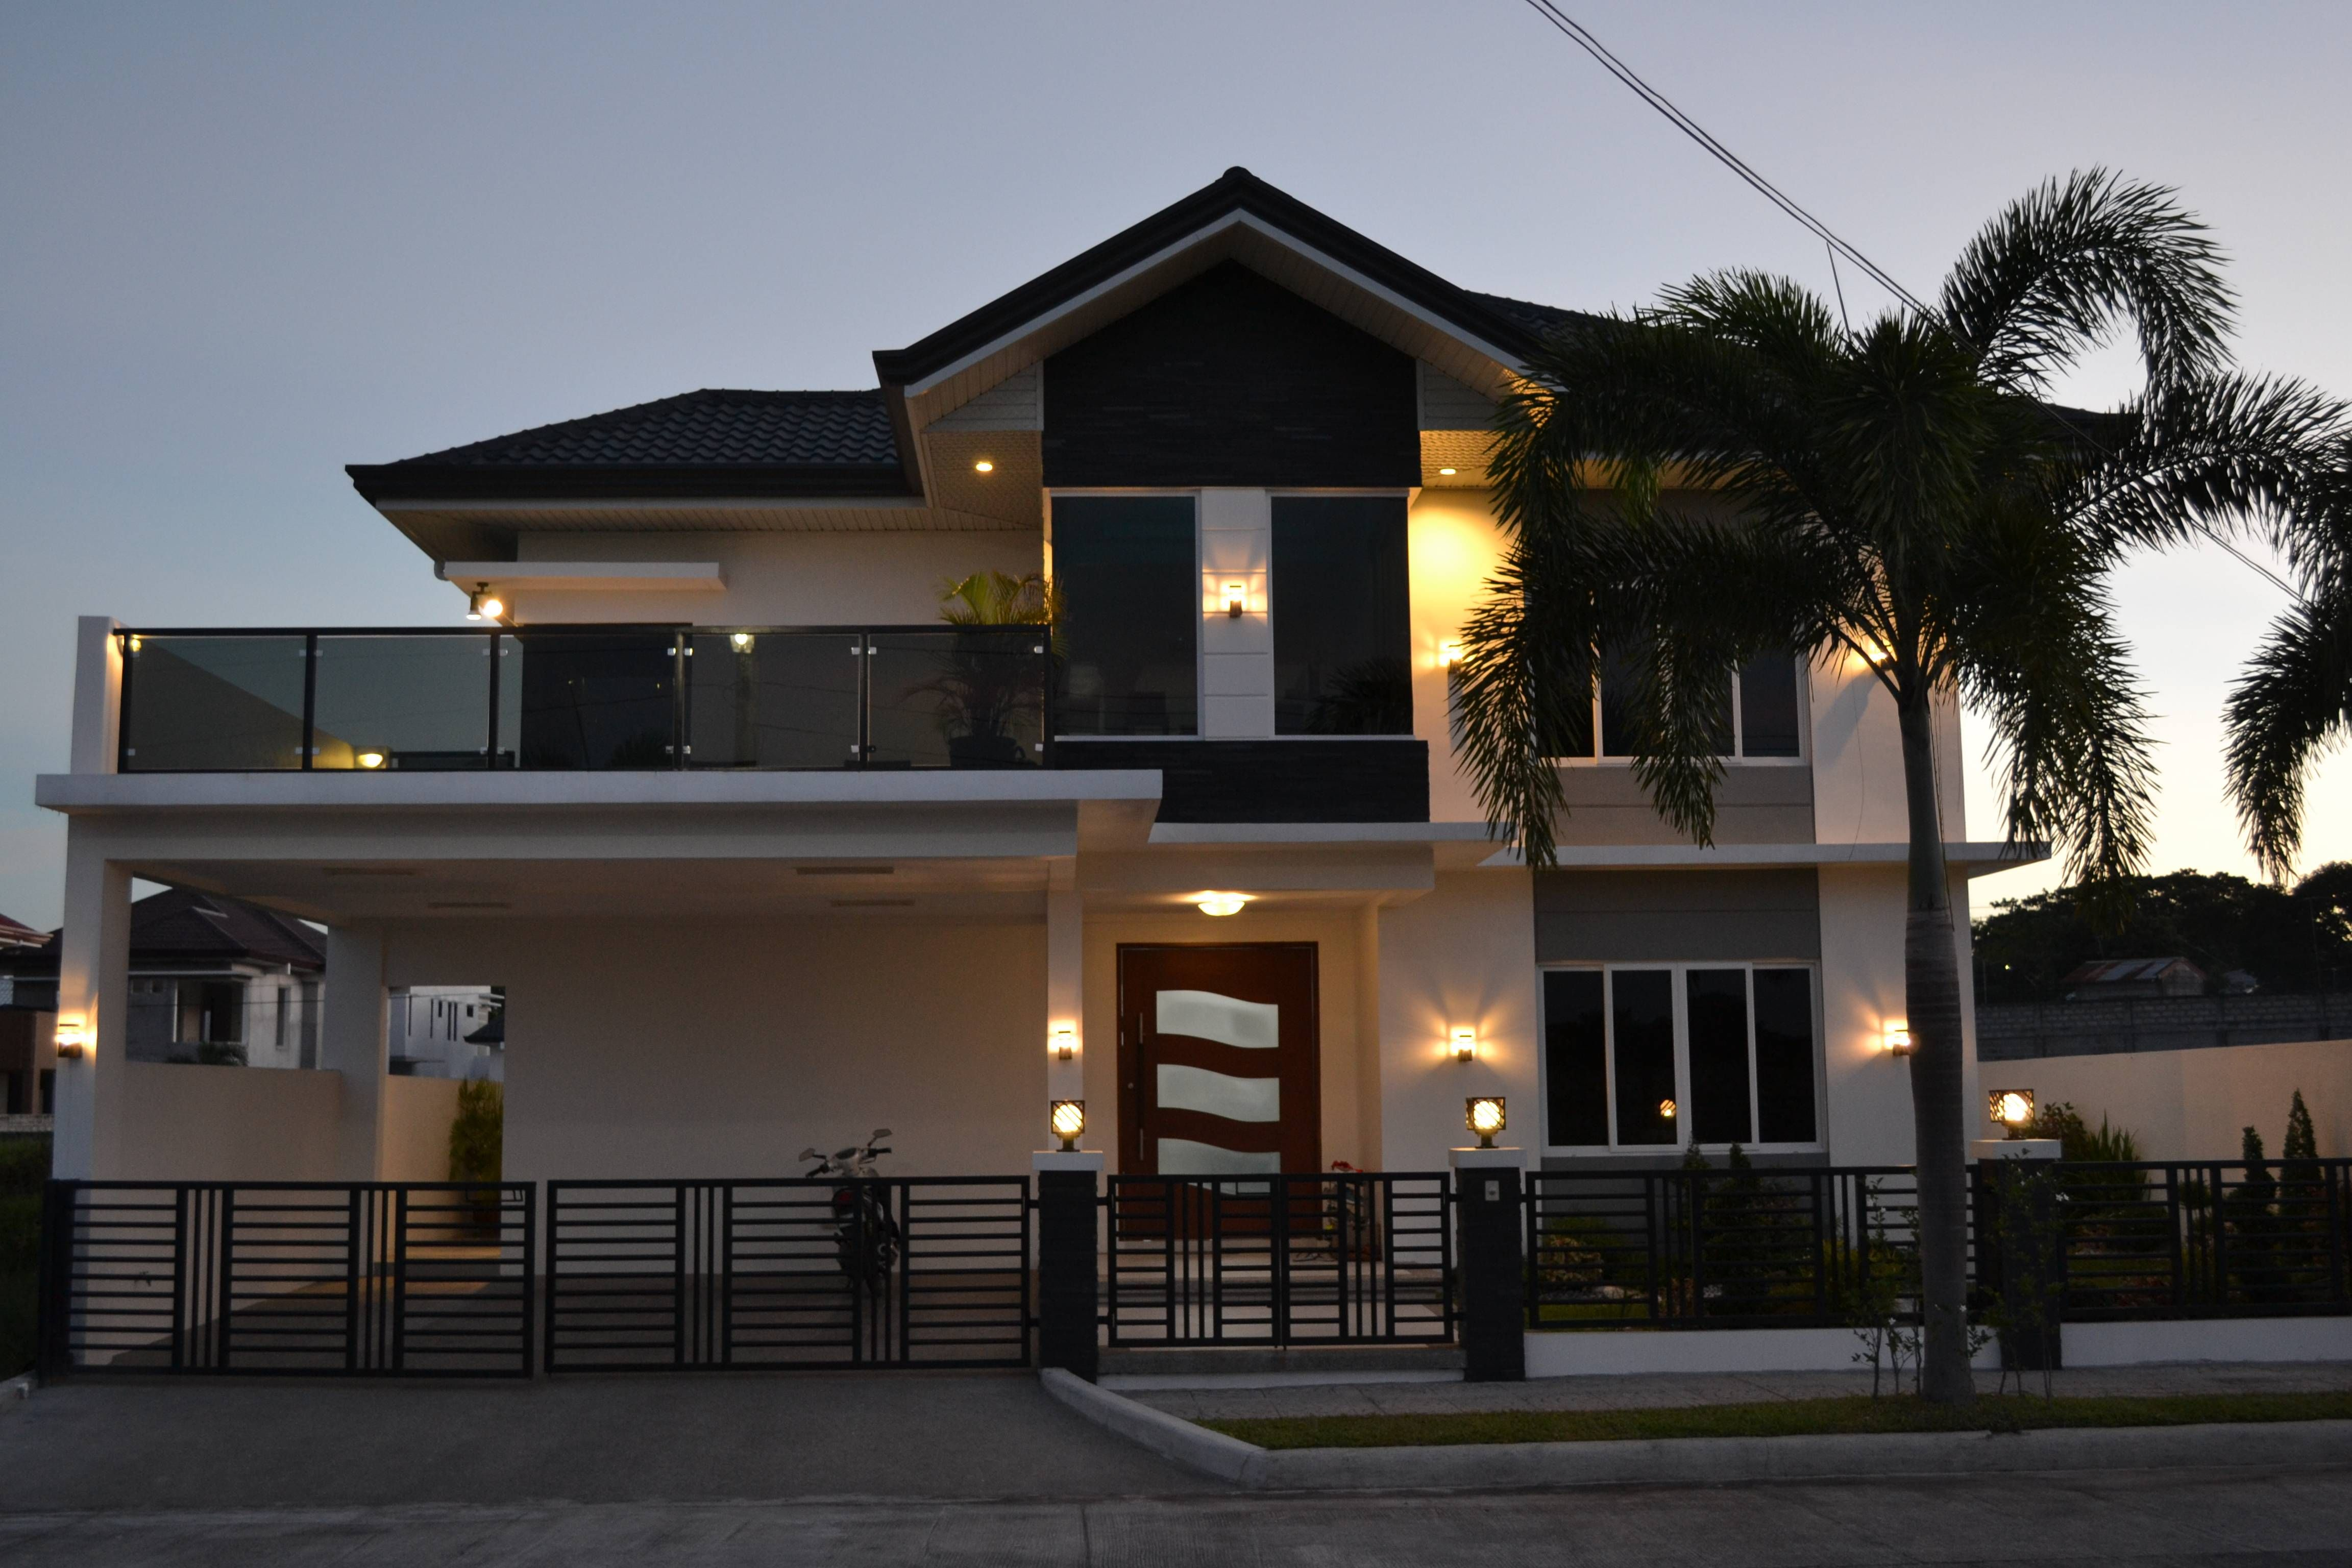 Architecture Design Houses Philippines modern philippines houses | house style | pinterest | philippines